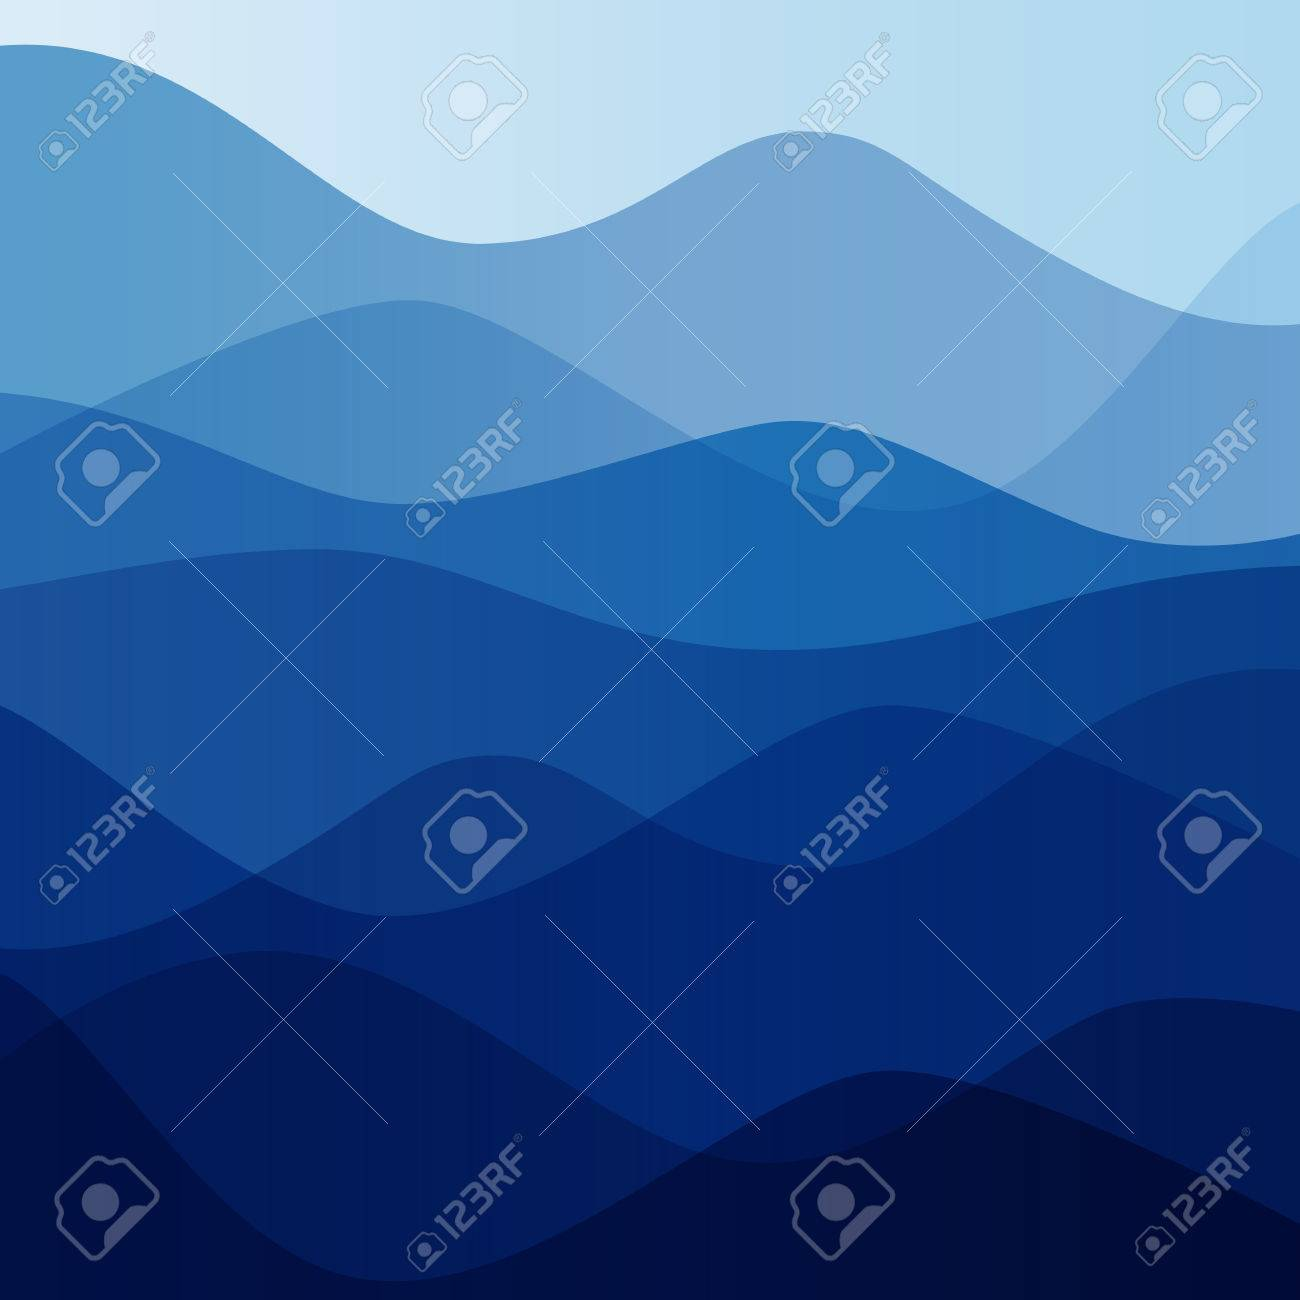 Abstract water nature landscape. Decorative square background. Vector graphic template. - 46085189